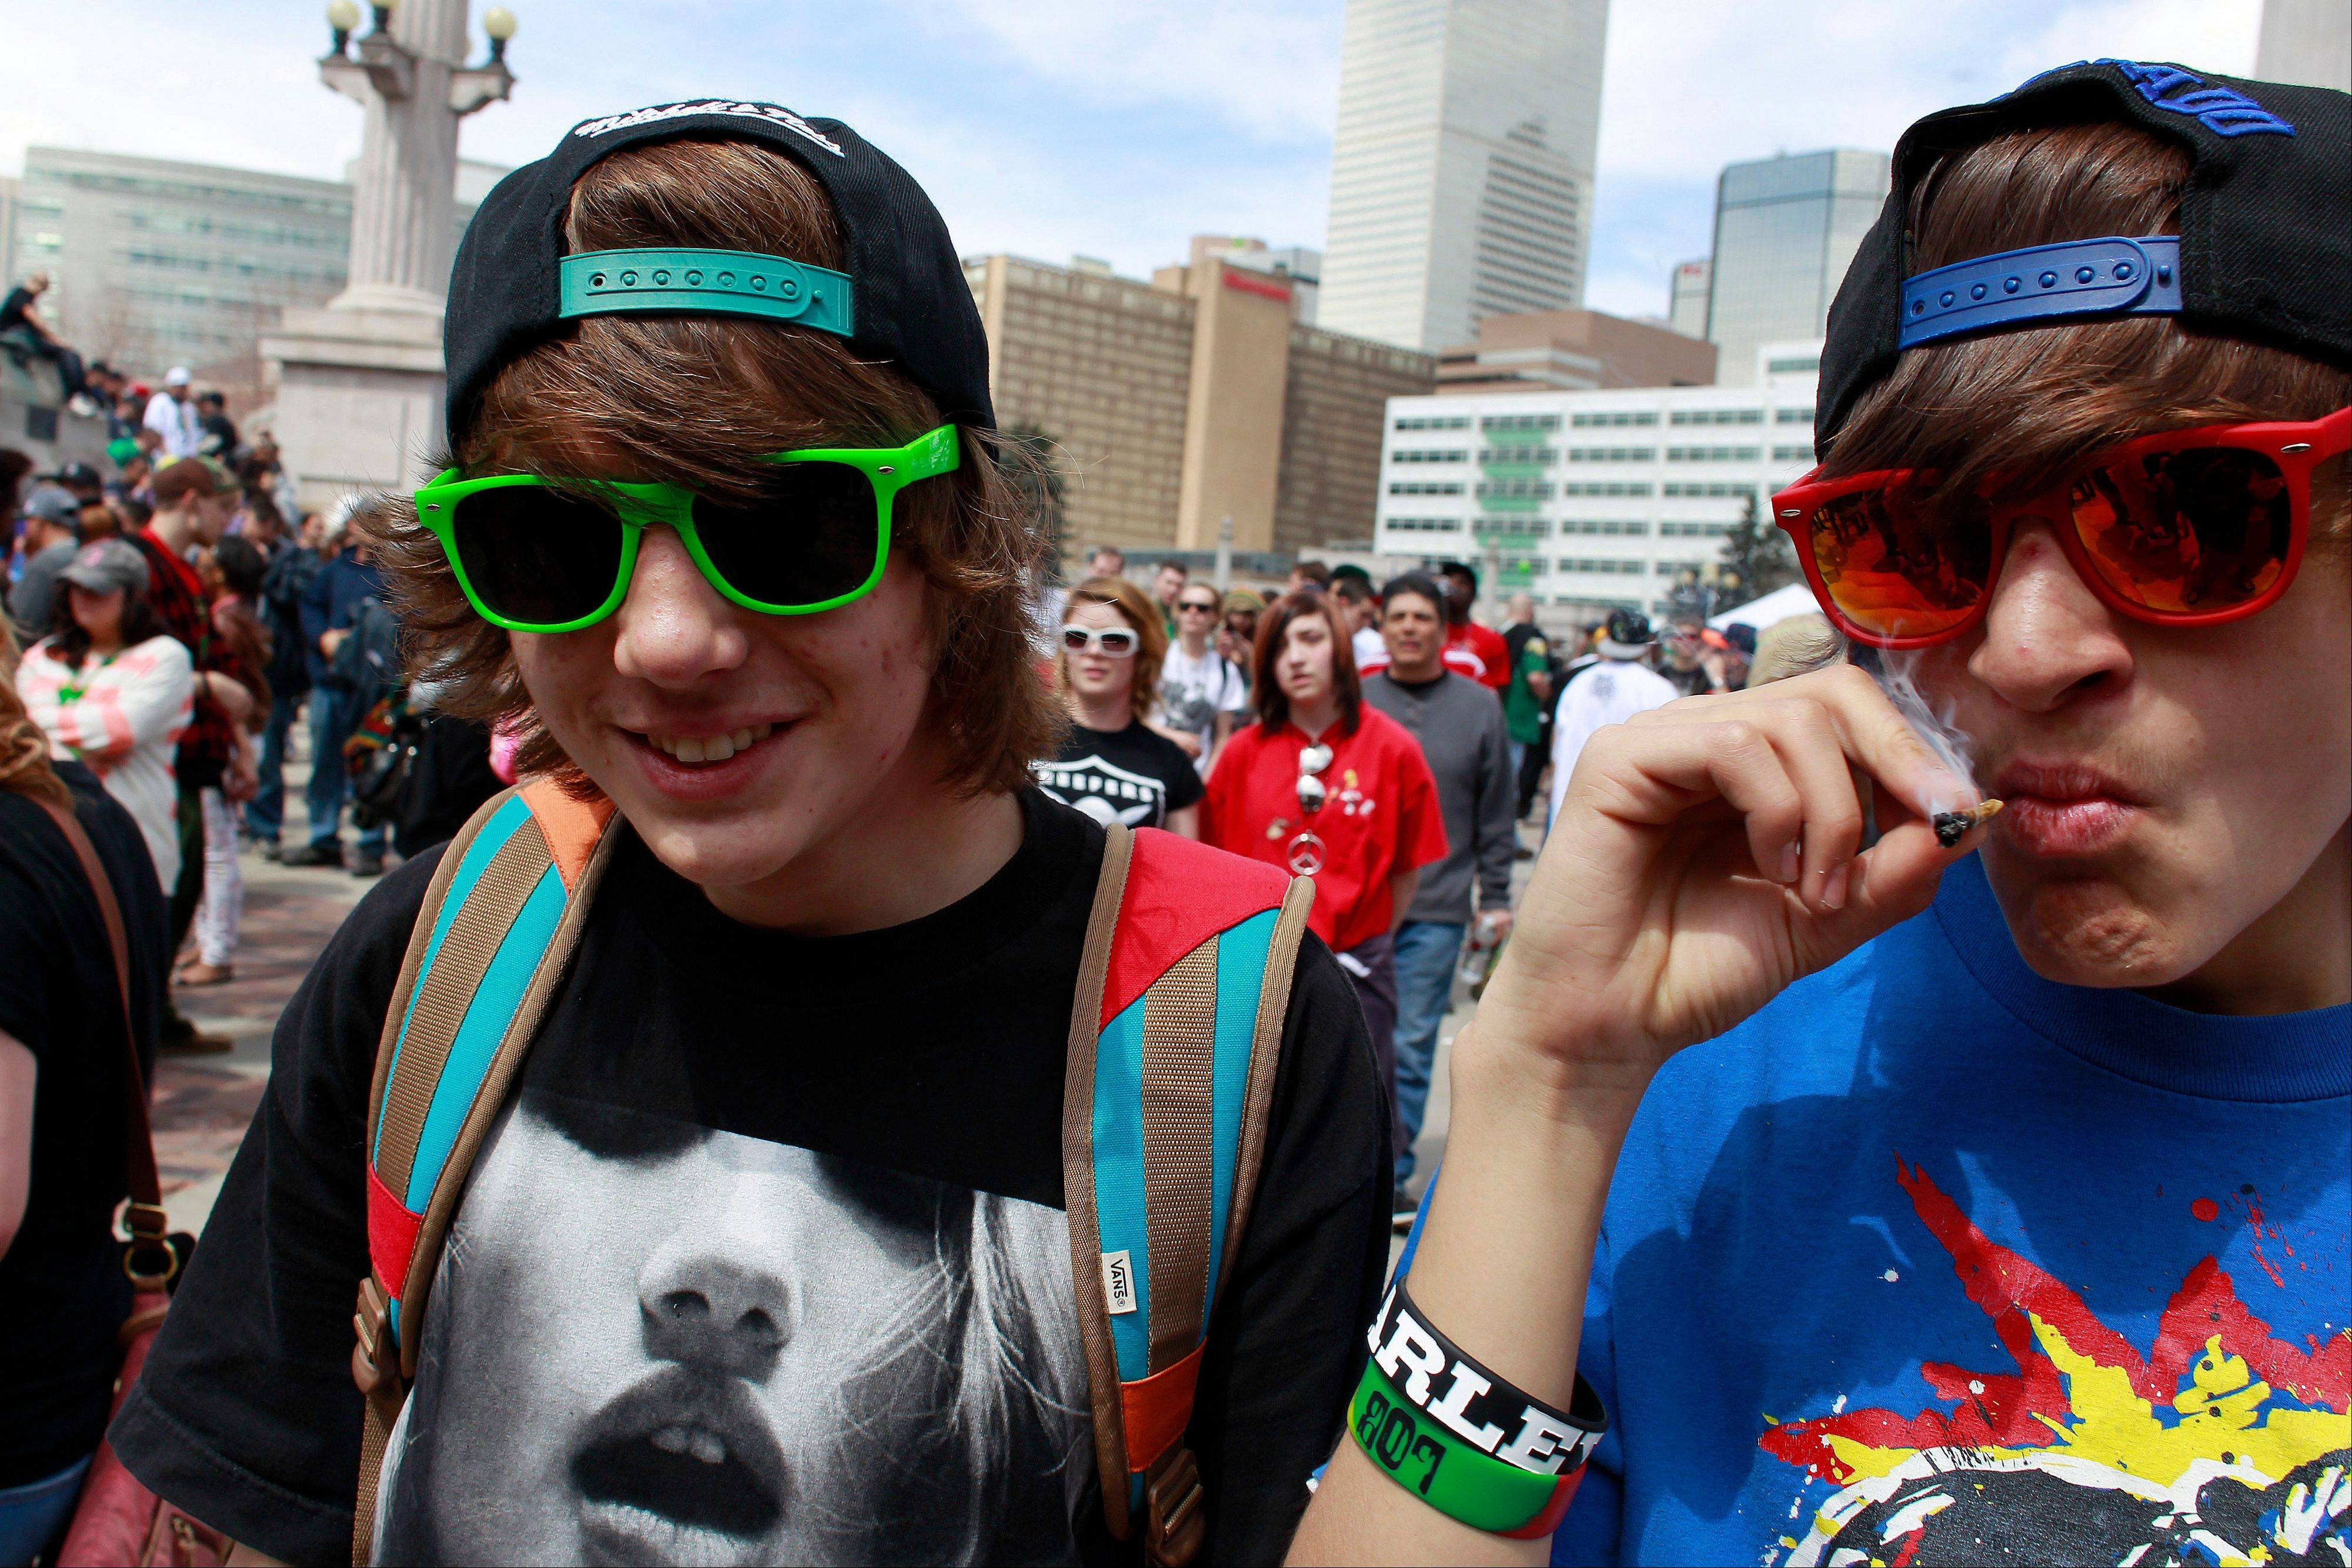 Youths smoke marijuana Saturday at the Denver 4/20 pro-marijuana rally at Civic Center Park in Denver.